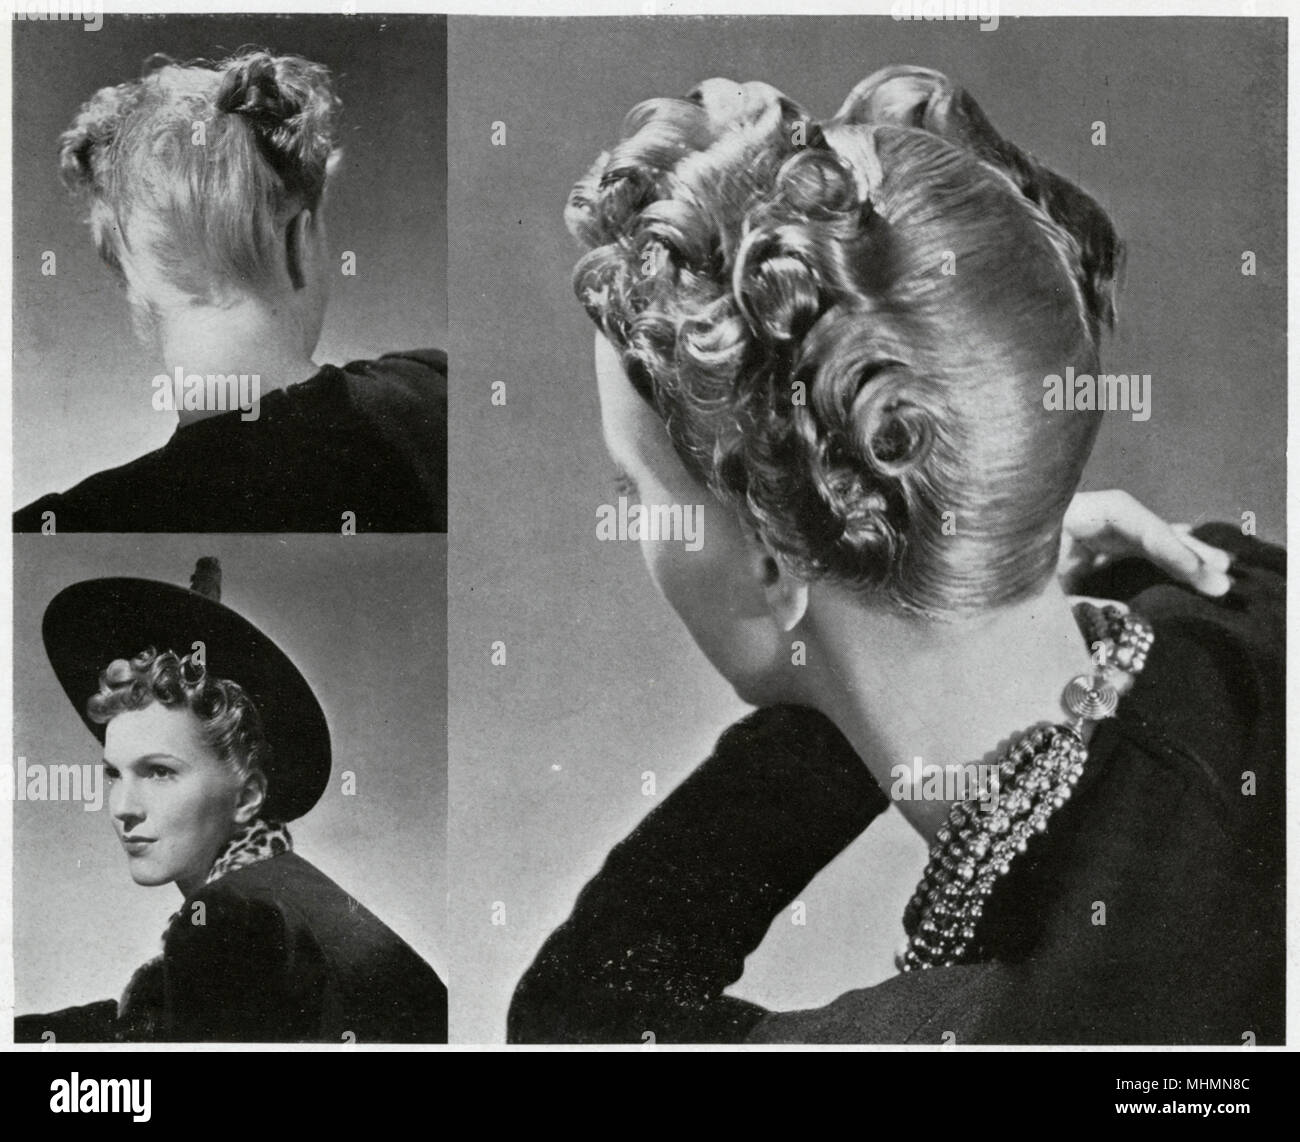 1930s hairstyle stock photos & 1930s hairstyle stock images